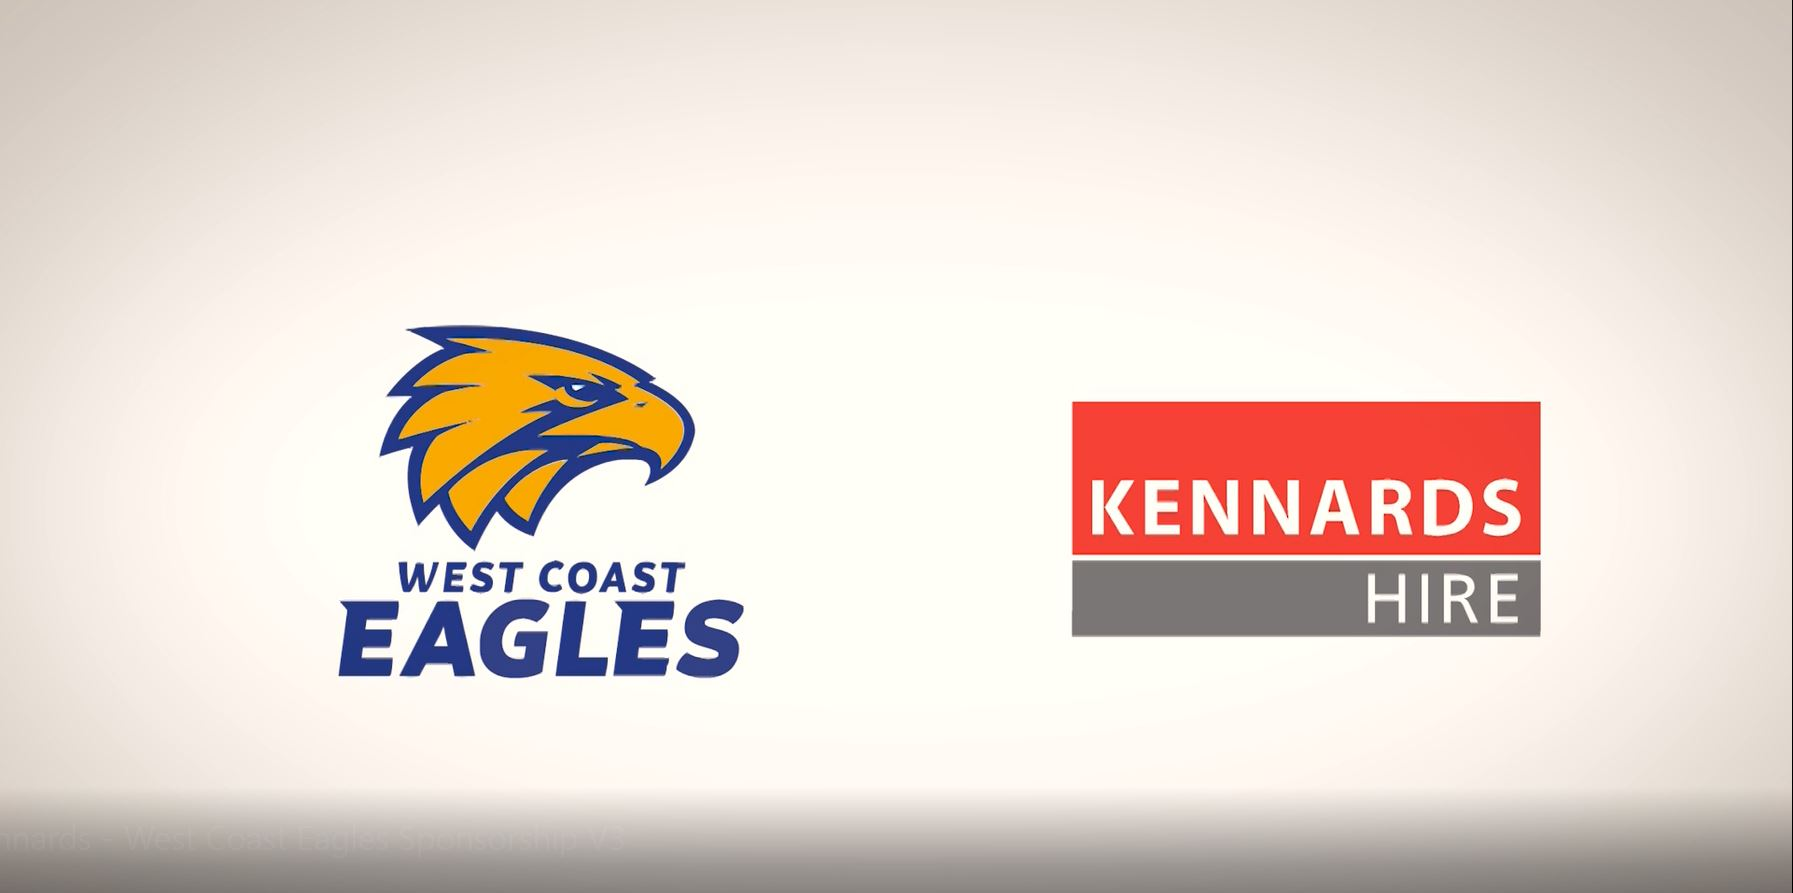 Kennards Hire and West Coast Eagles Sign Partnership Deal